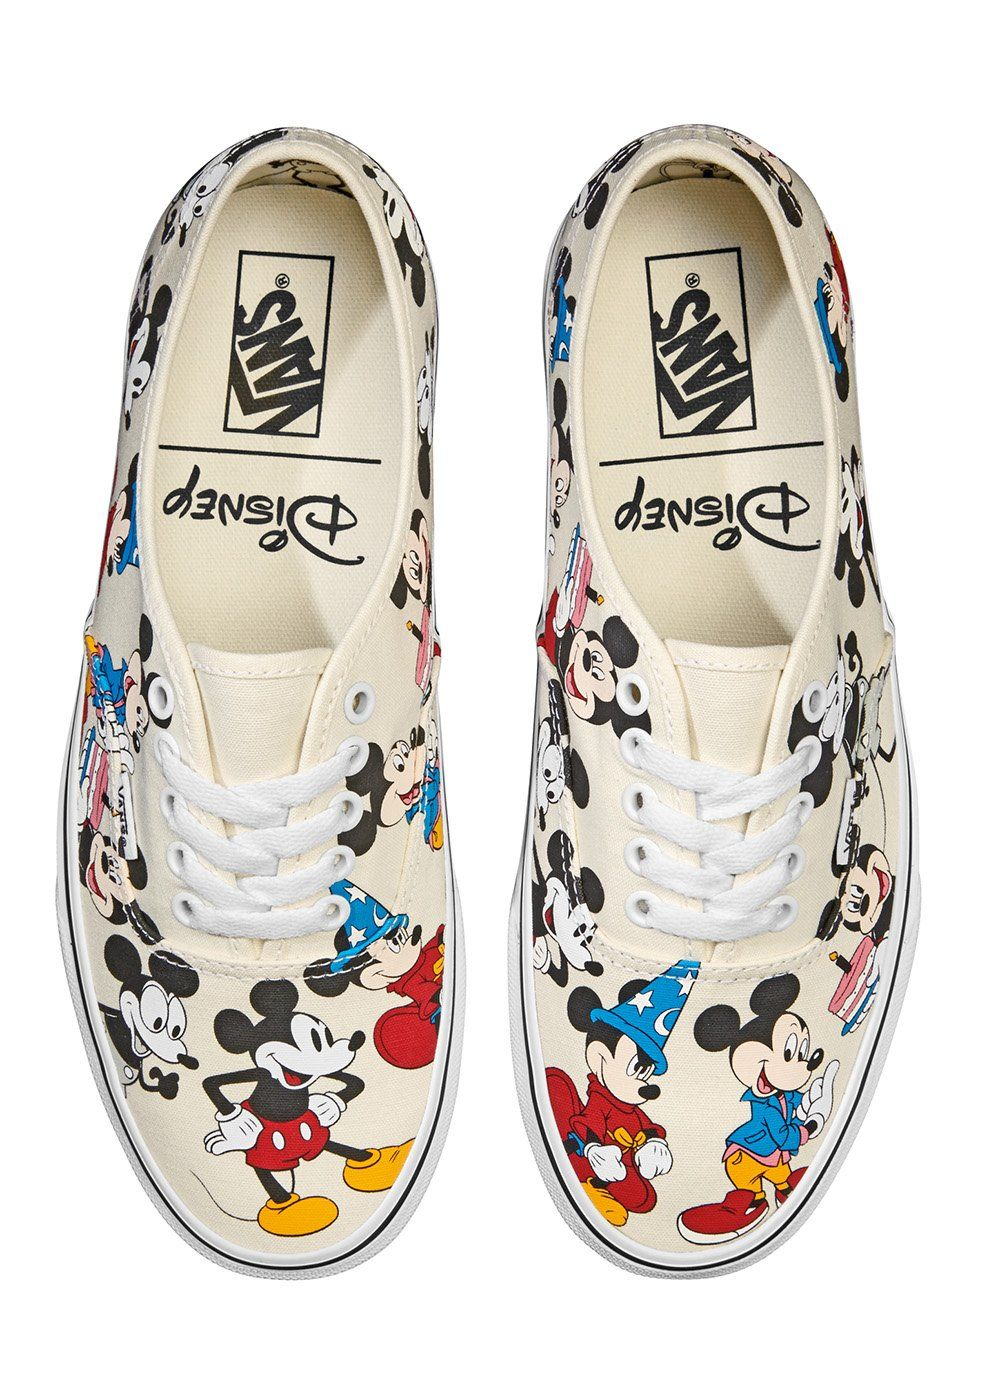 ba7547e603a8 Vans Disney Authentic Mickey's Birthday - Mens Large Sizes | Dana ...